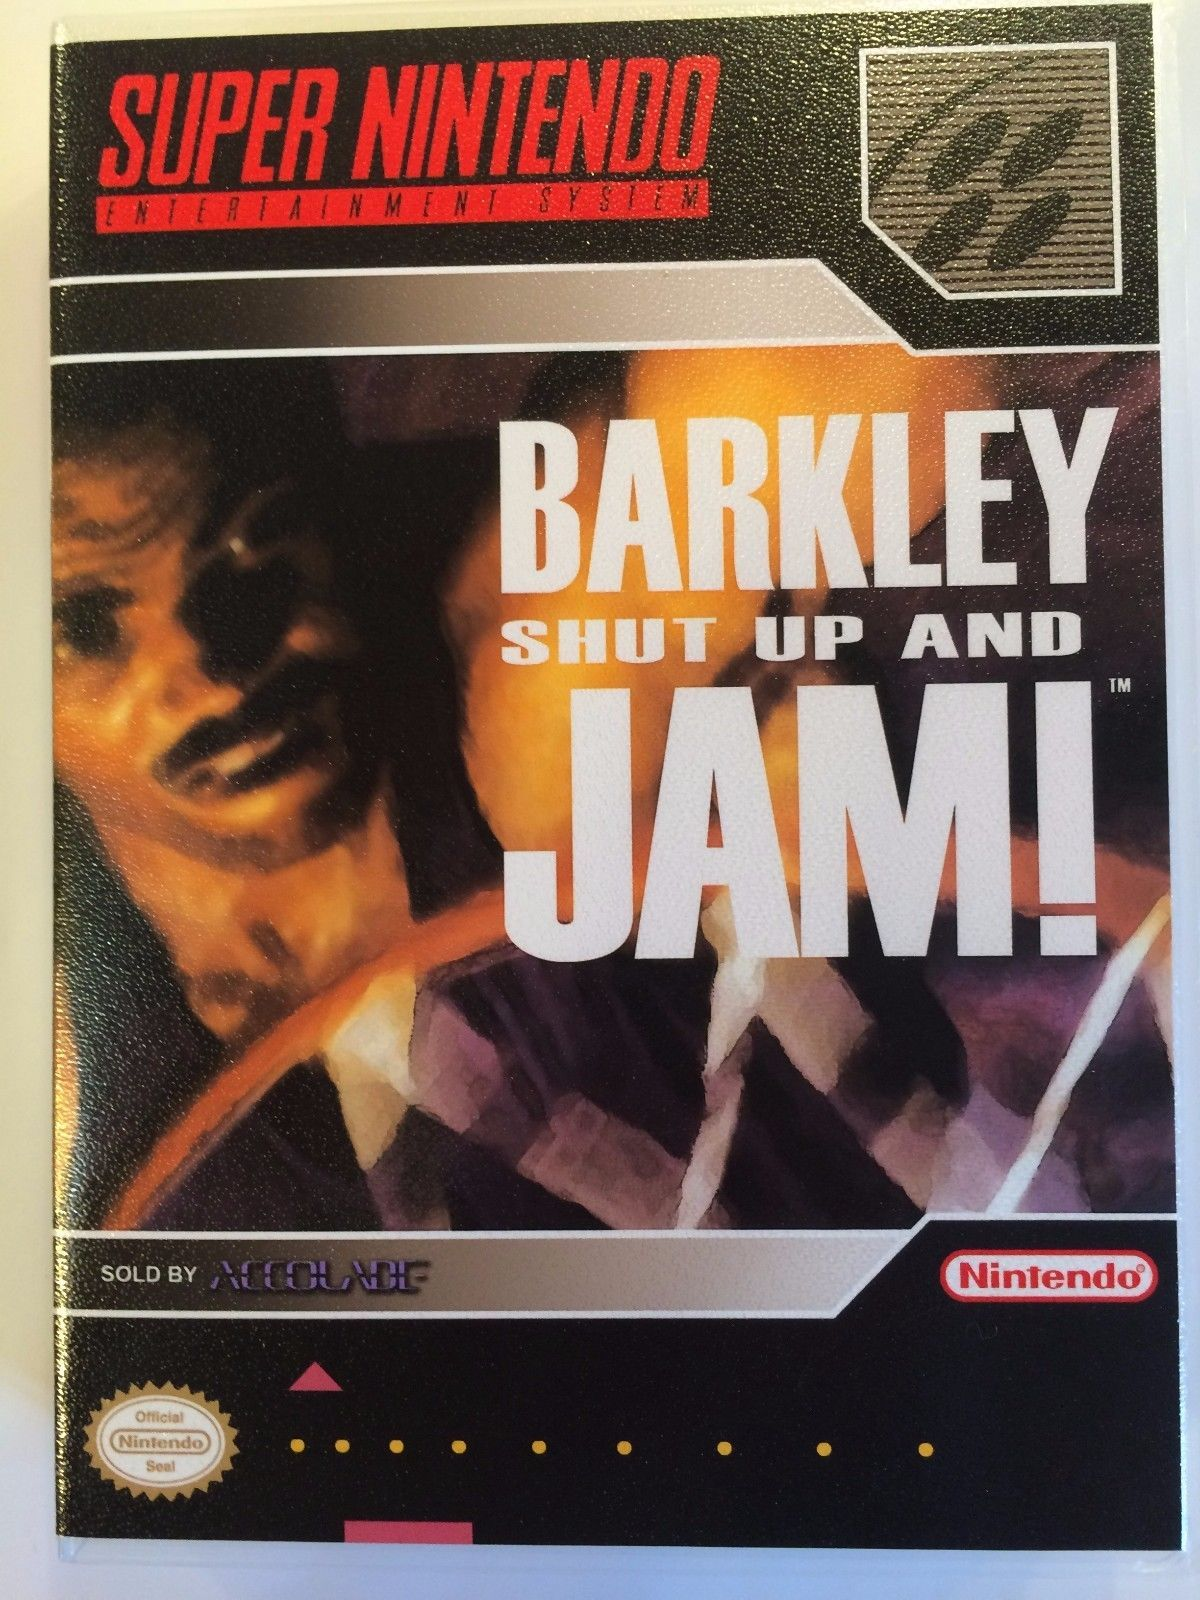 Barkley Shut Up and Jam! - Super Nintendo - Replacement Case - No Game